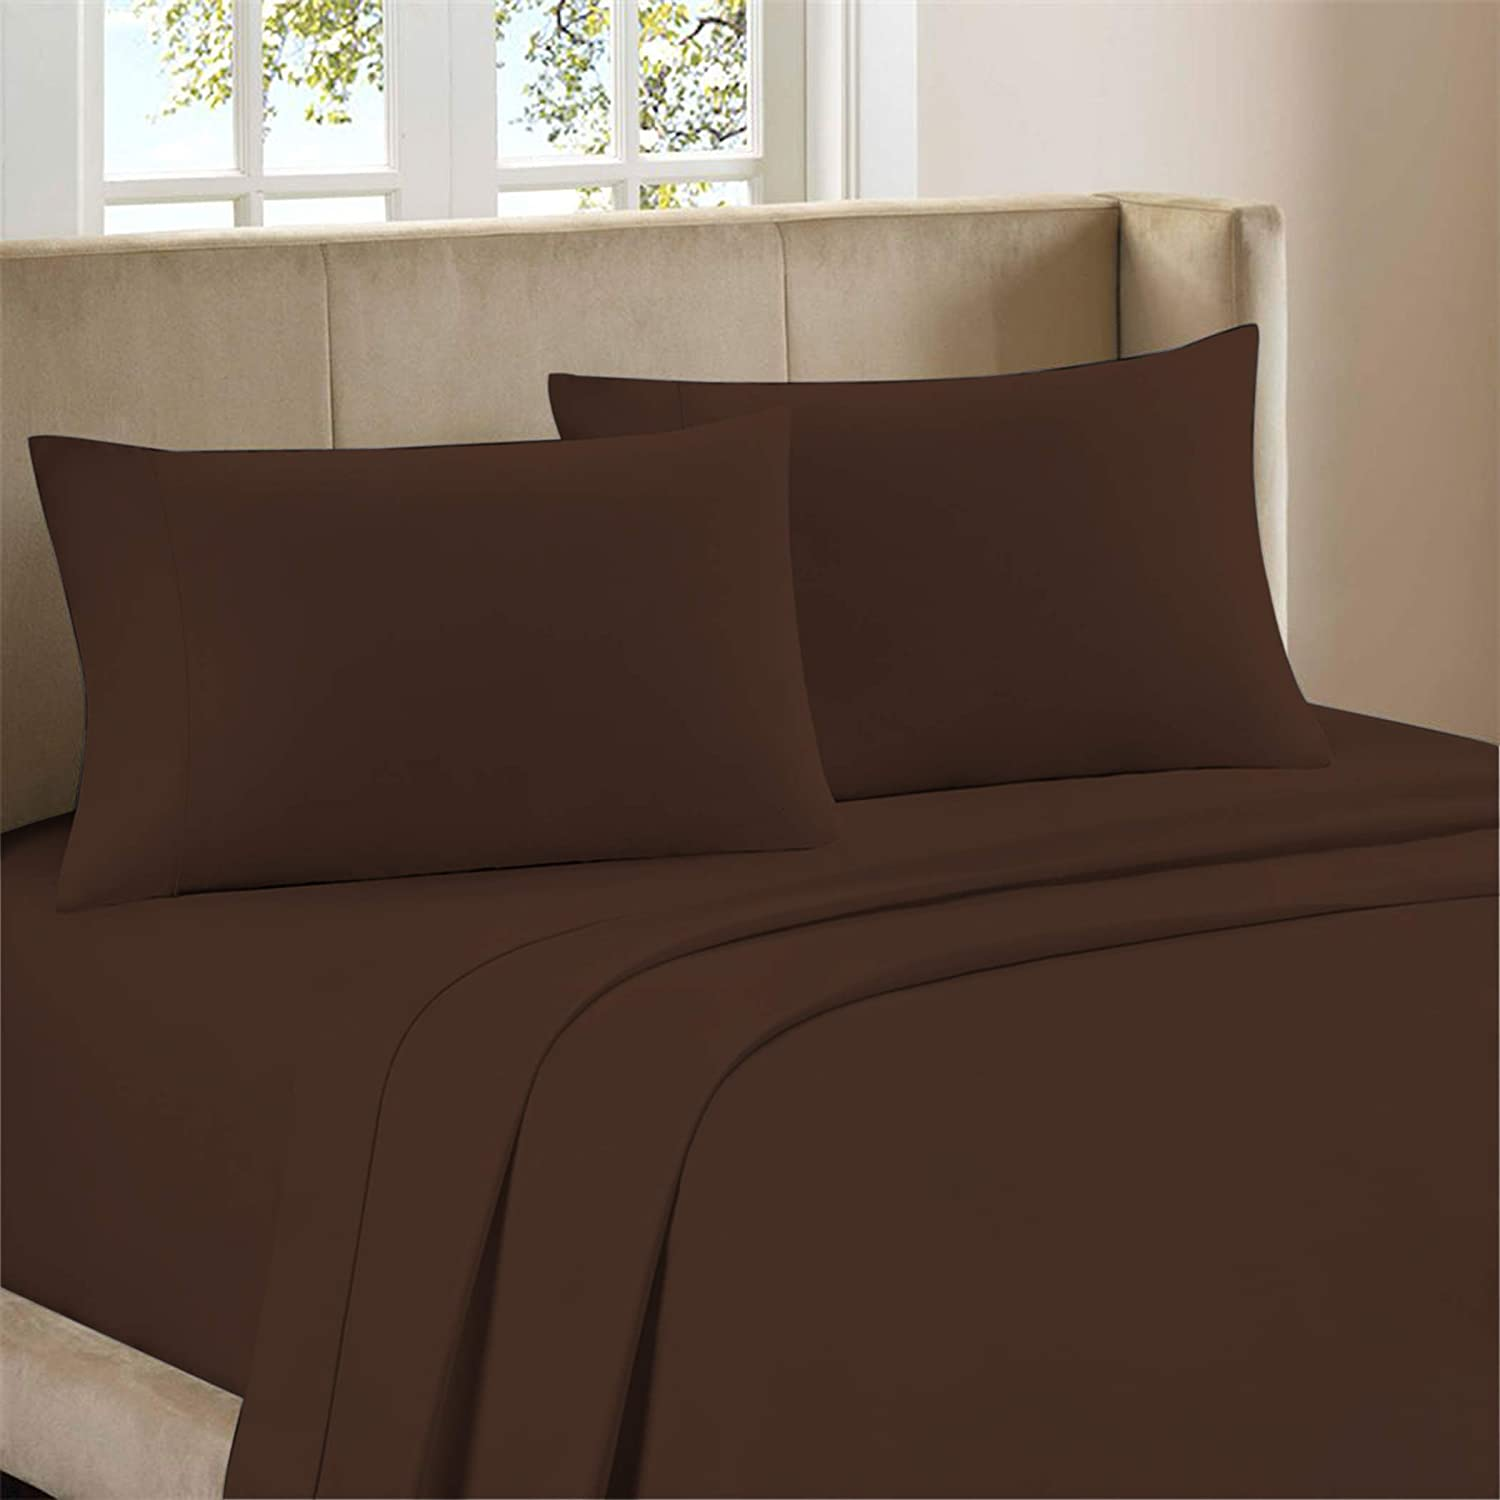 Bestselling Garment Washed Breathable Cotton 4-Piece Sheet Set, Artisan Percale Weave, Cool Comfort, Vintage Casual Look, 100% Natural Cotton, Deep Pockets Upto 18